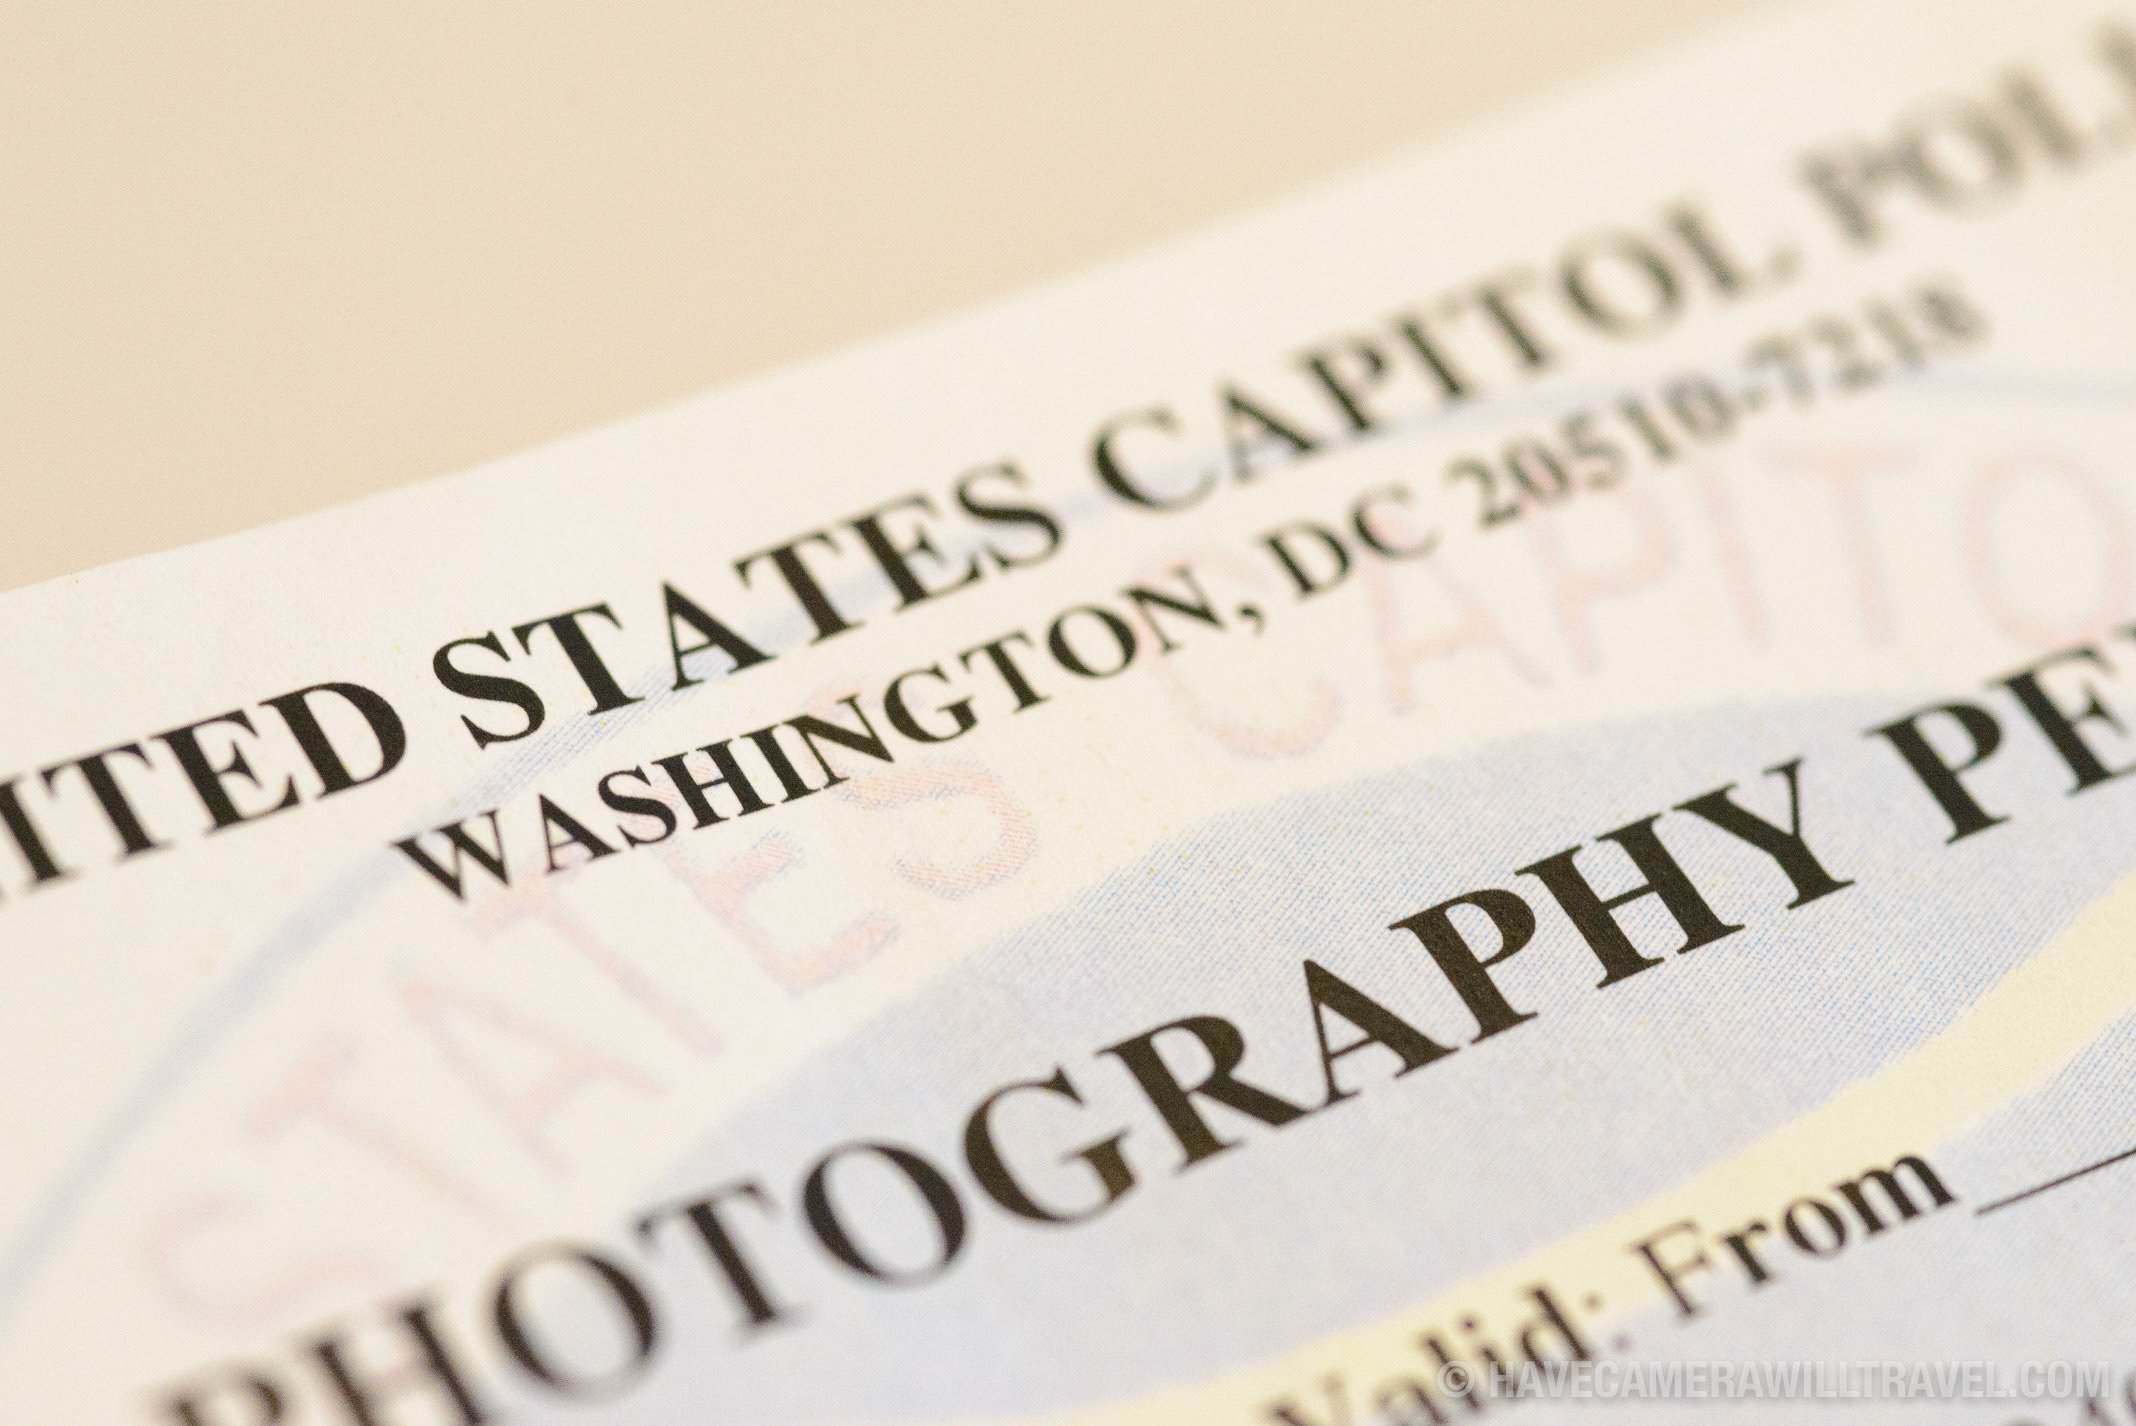 US Capitol Police Photography Permit